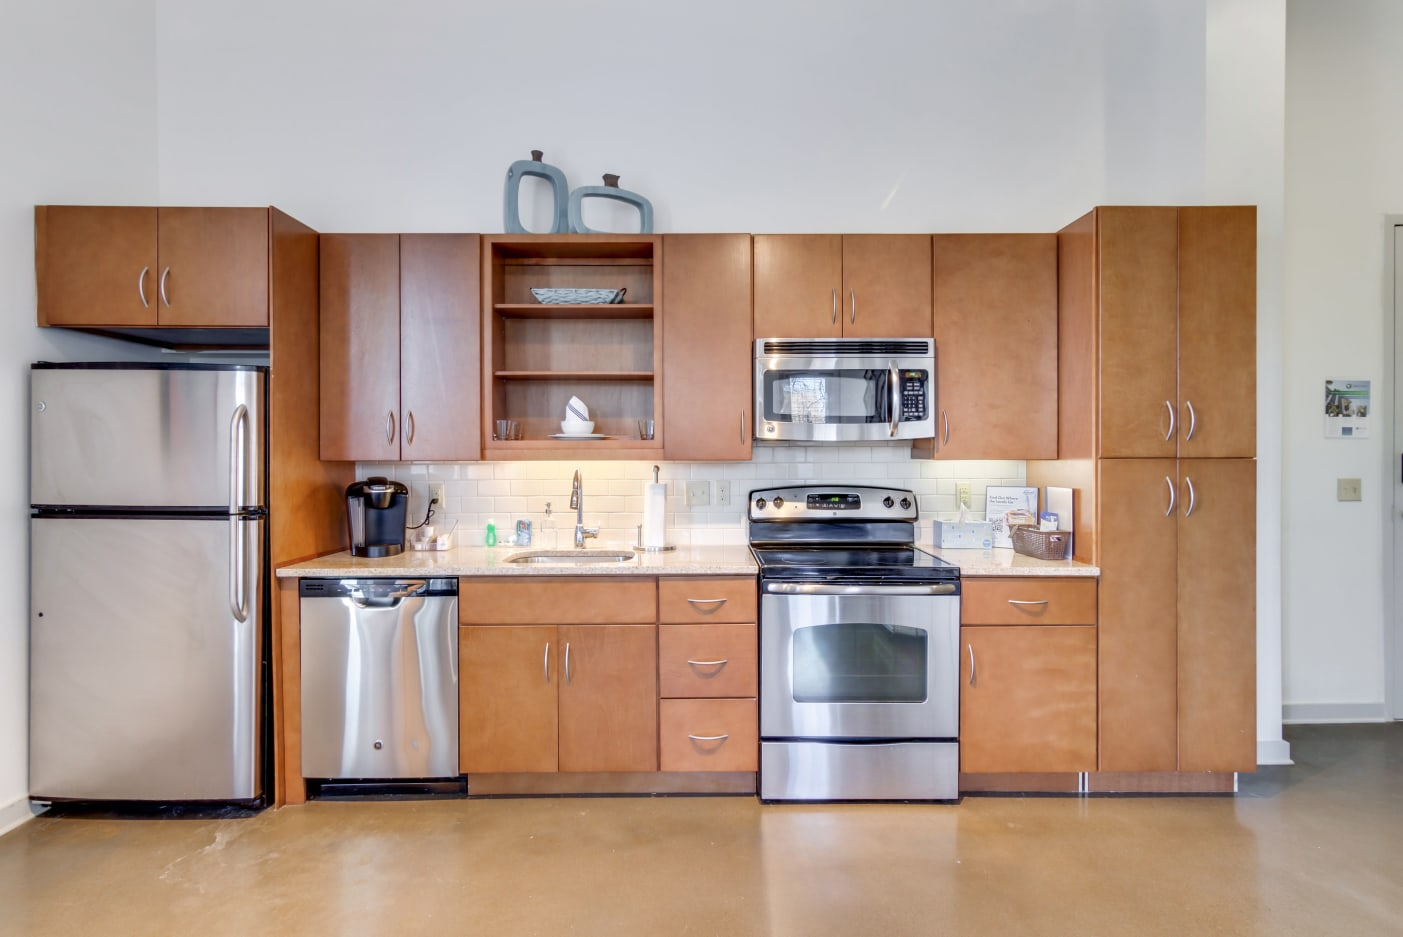 stainless-steel-appliances-12-south-apartments